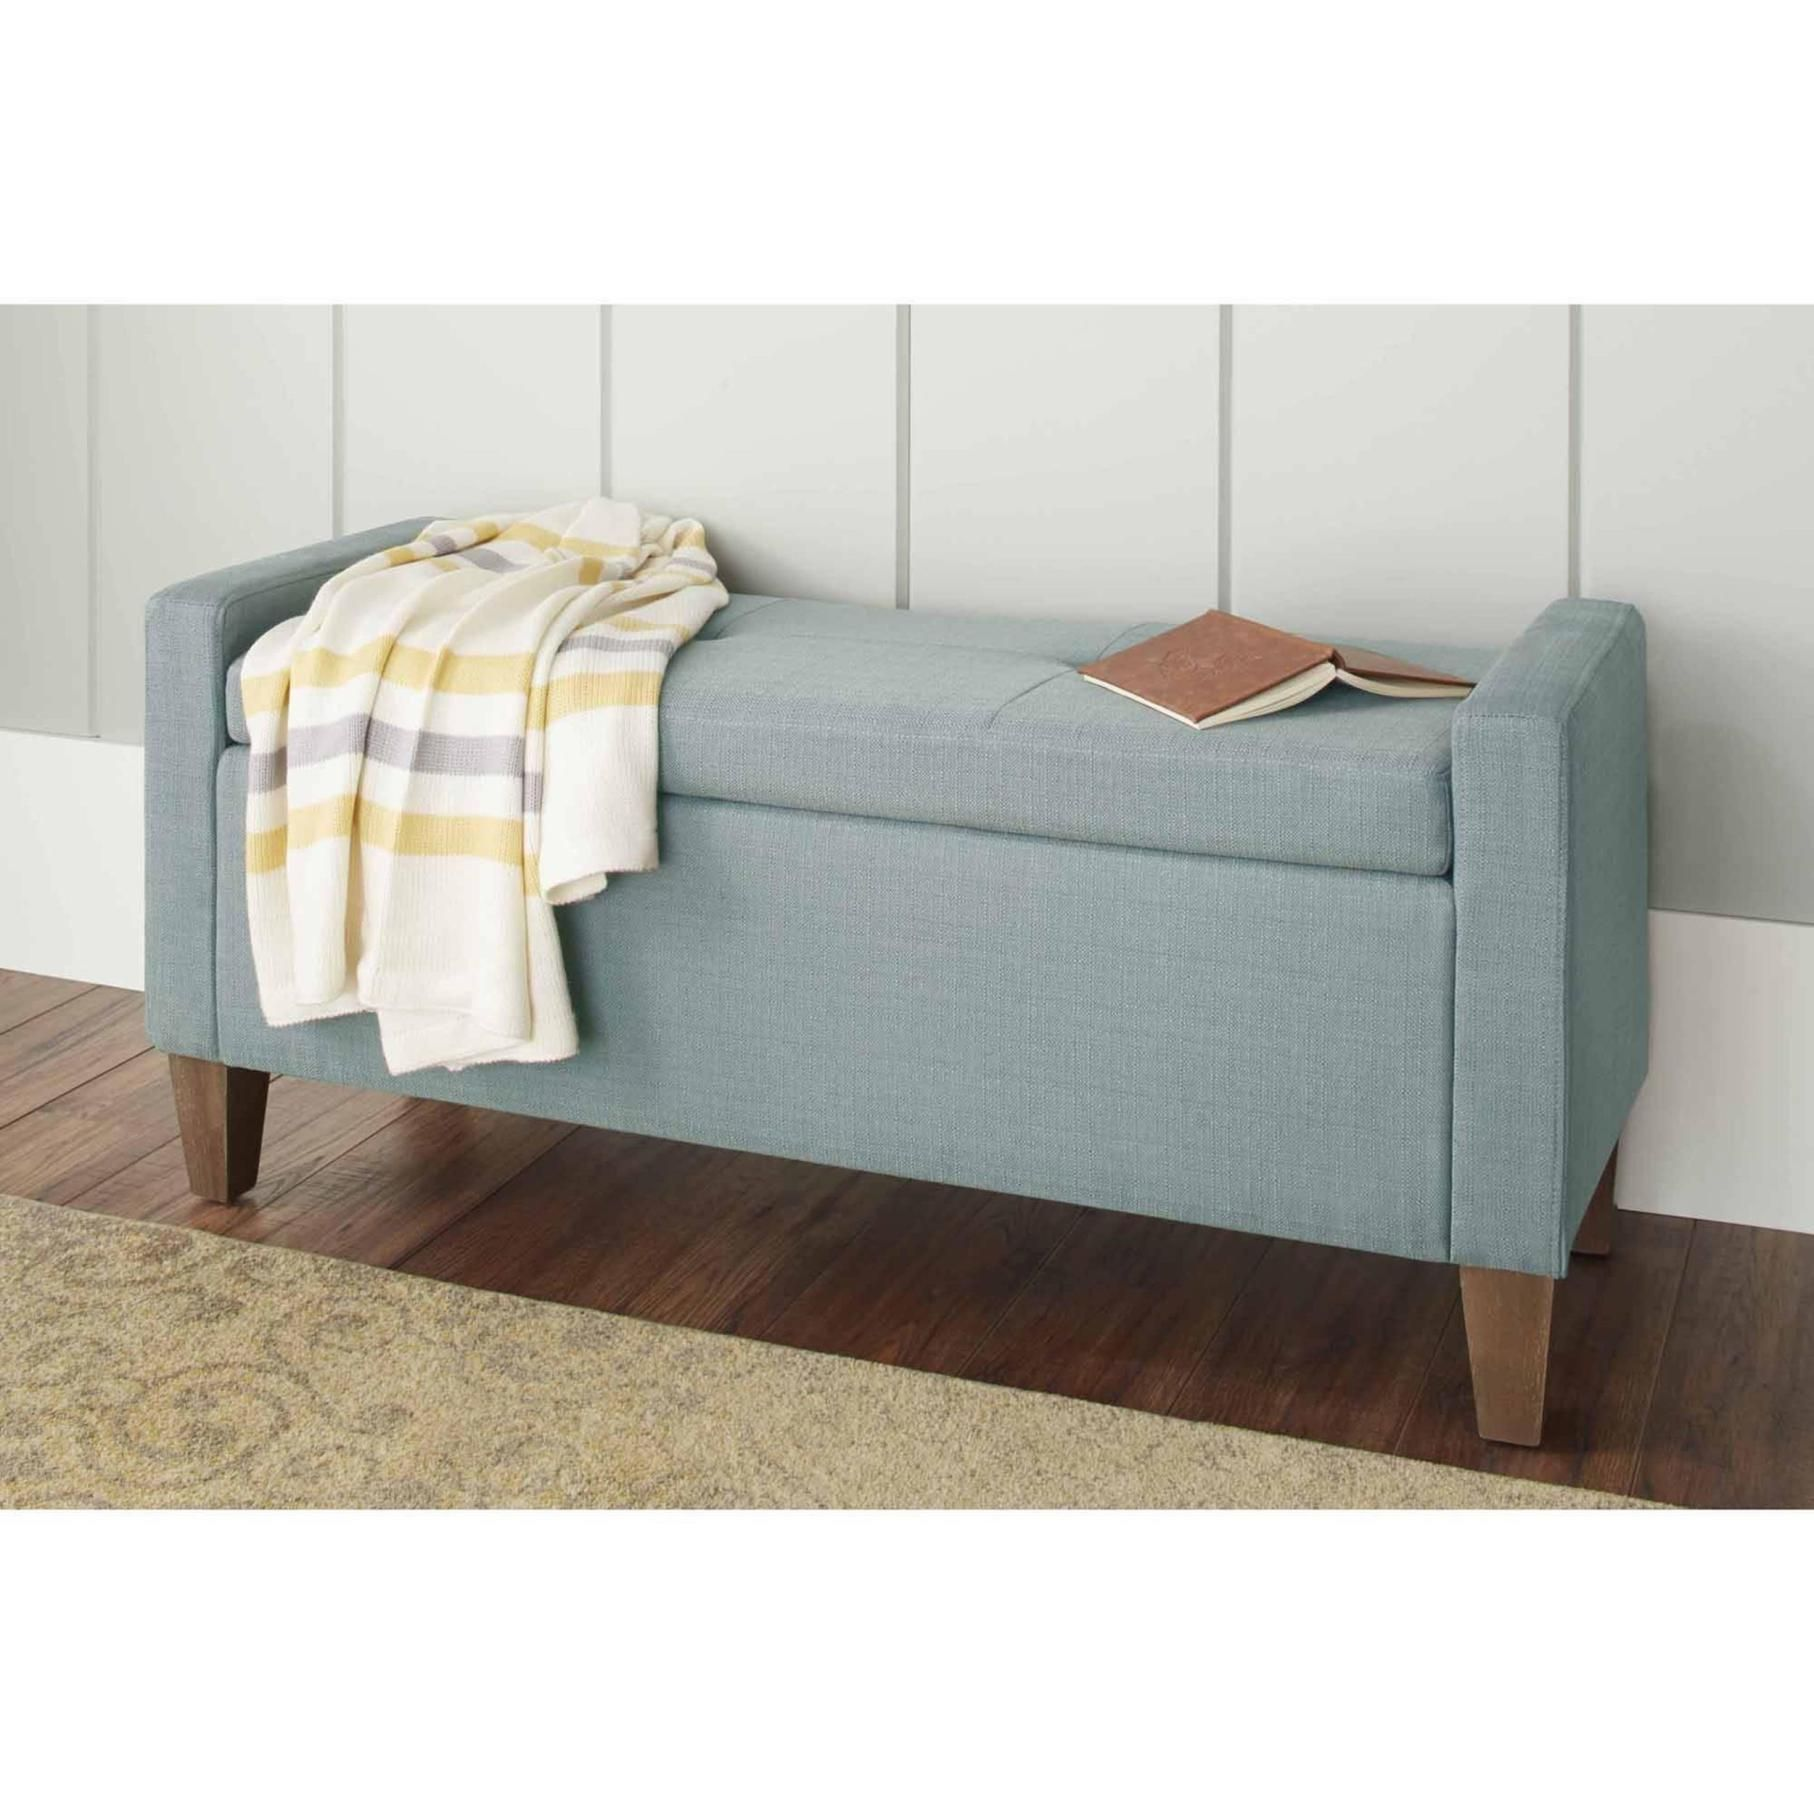 35 perfect and cheap bedroom storage bench seat ideas